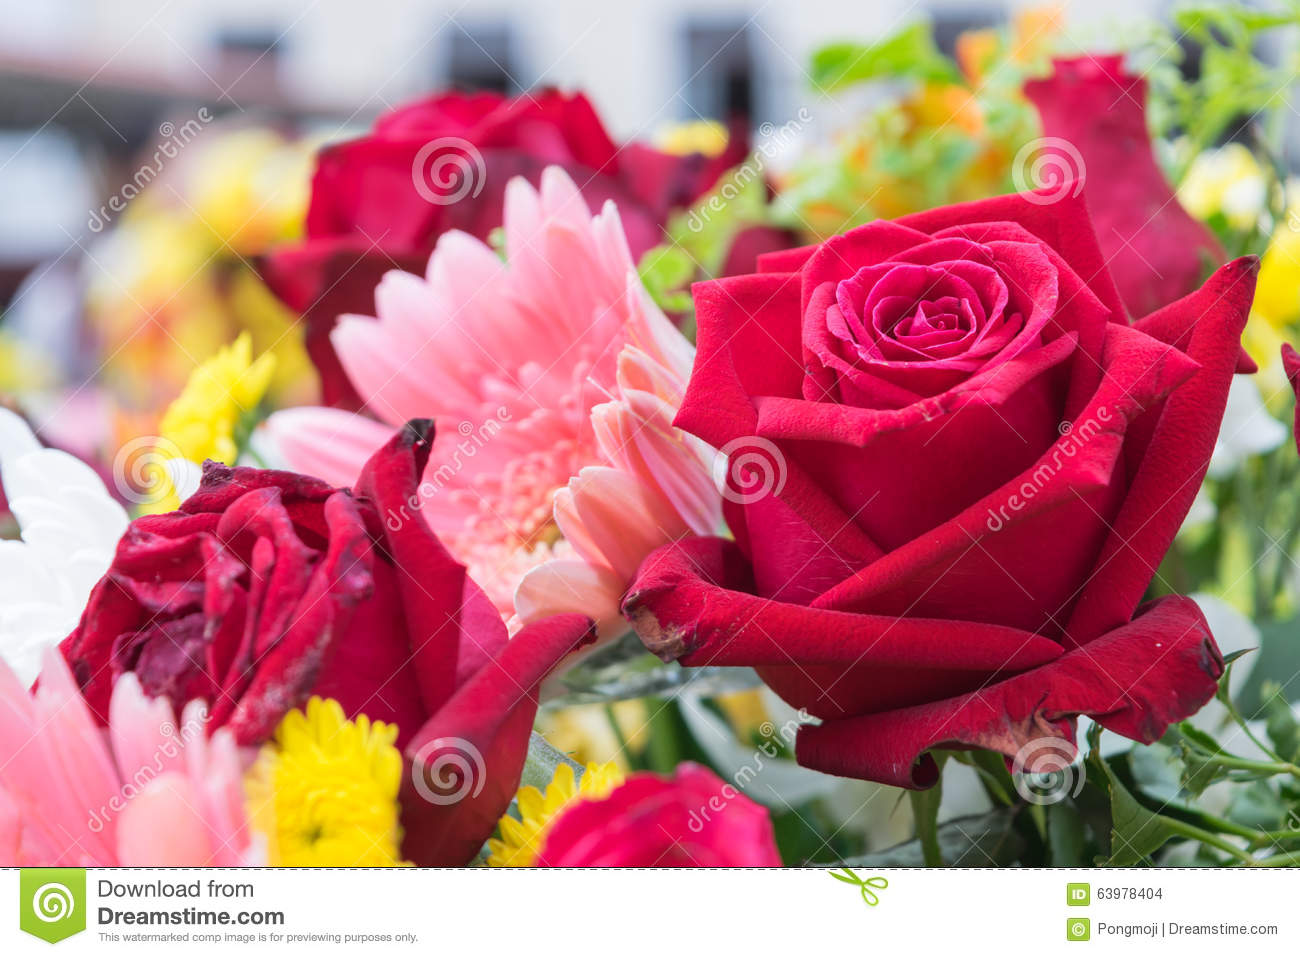 Beautiful Red Rose Flower In A Bouquet Stock Photo - Image of petal ...